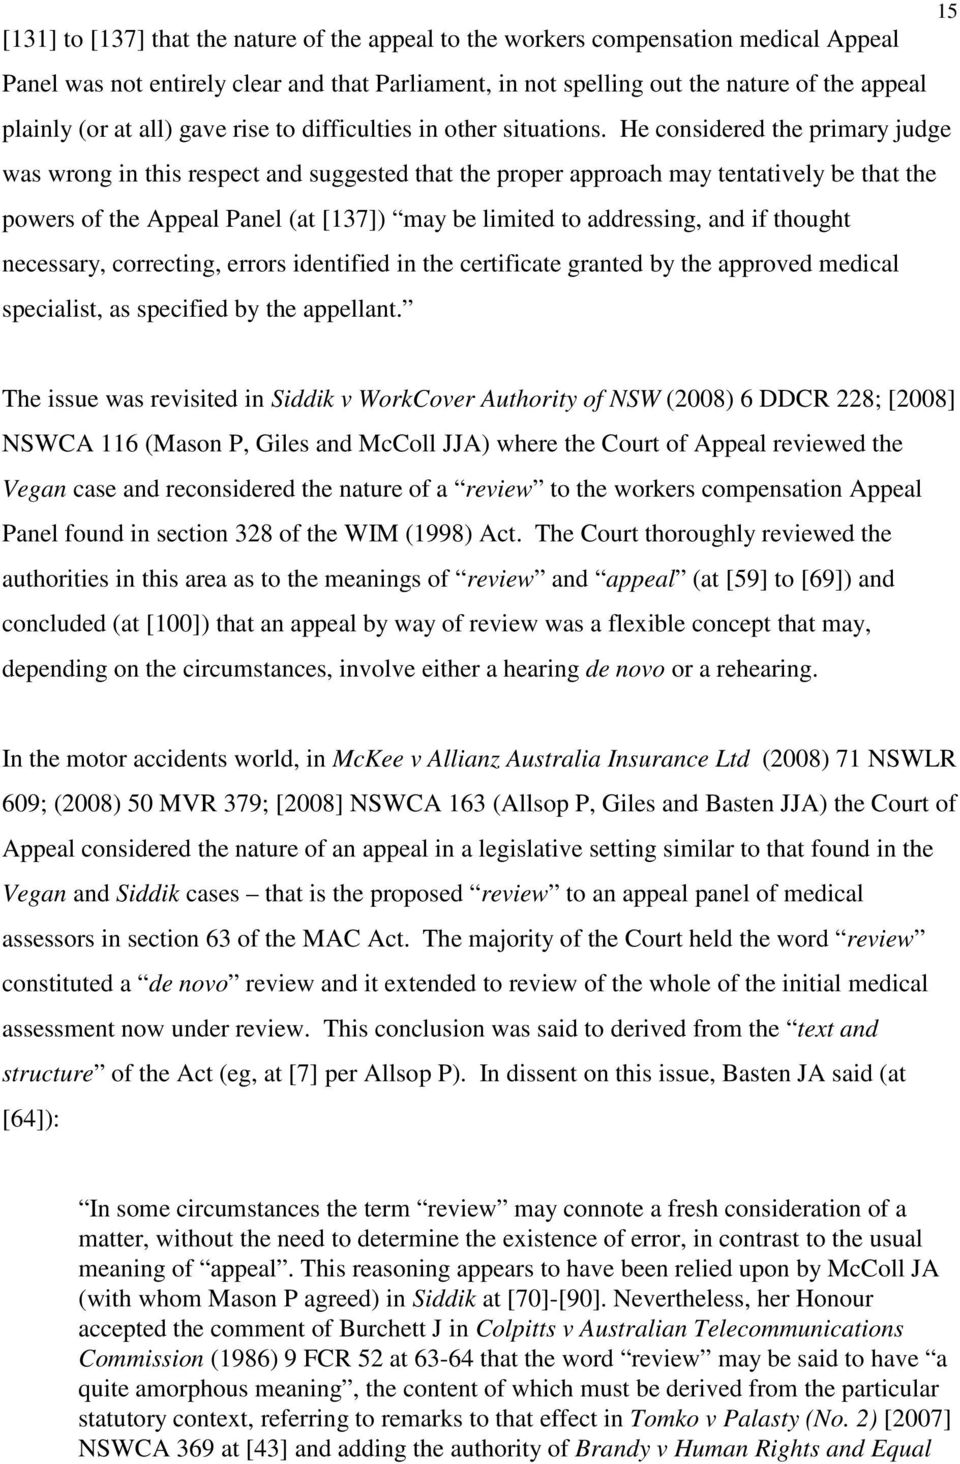 He considered the primary judge was wrong in this respect and suggested that the proper approach may tentatively be that the powers of the Appeal Panel (at [137]) may be limited to addressing, and if